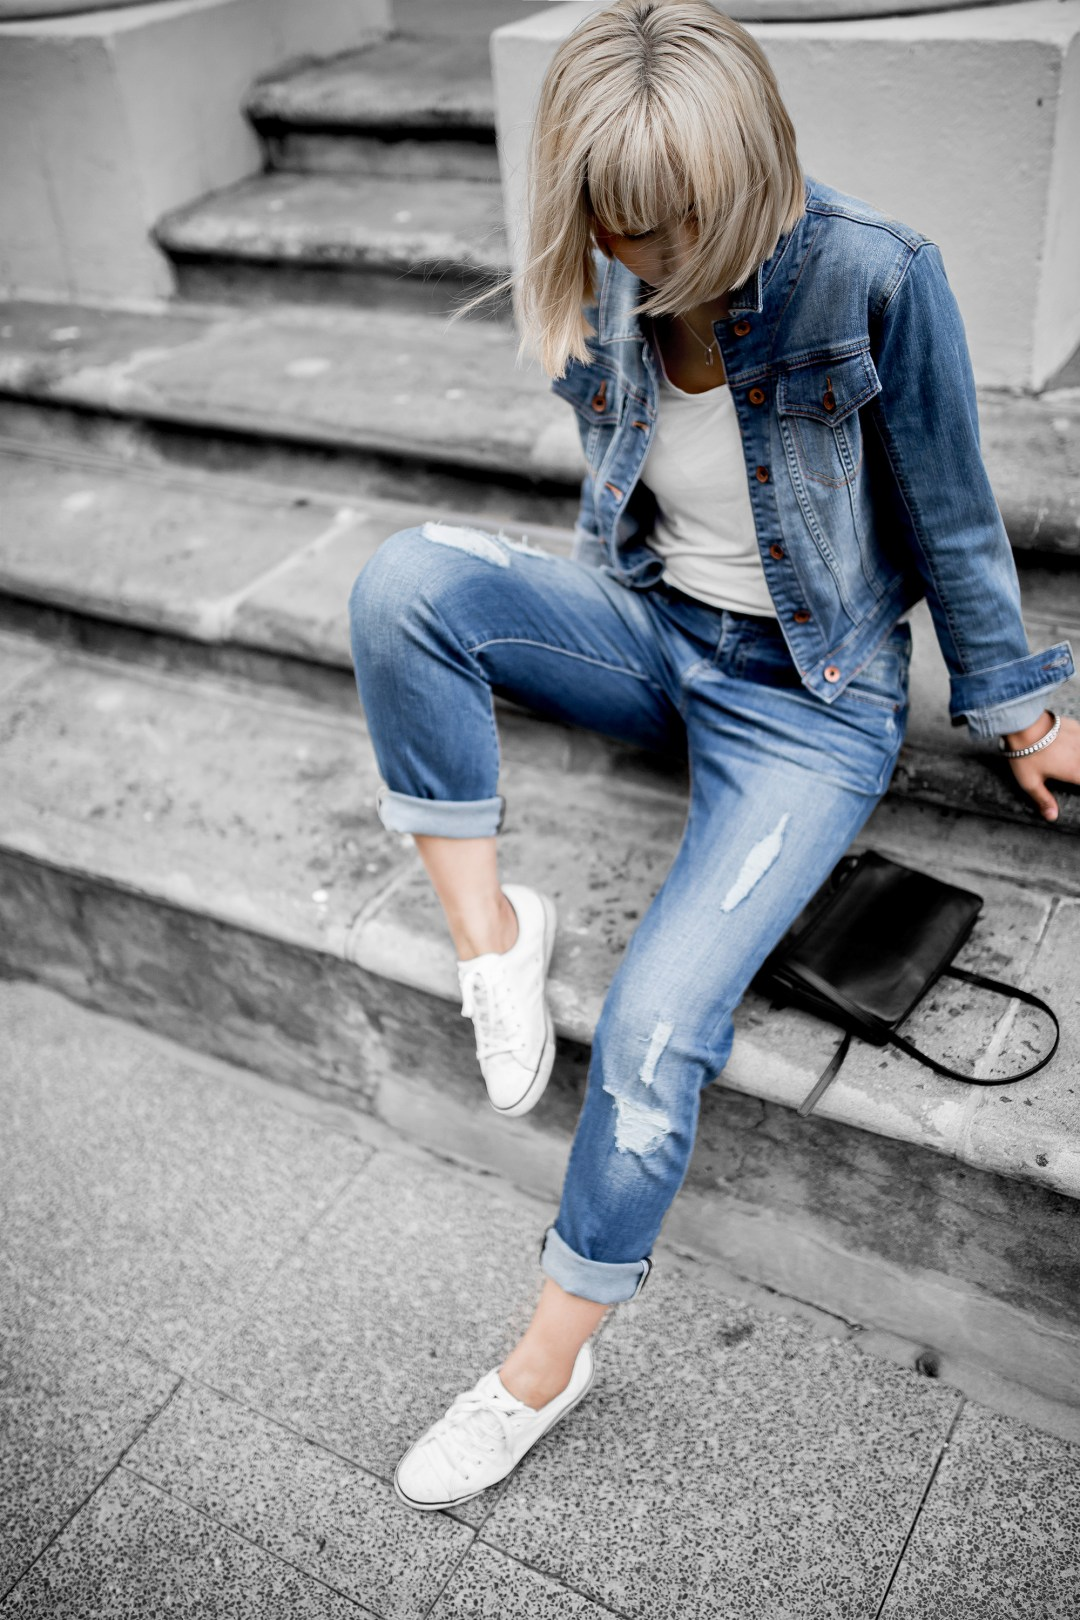 superdry-double-denim-boyfriend-jeans-denim-jacket-2-copy